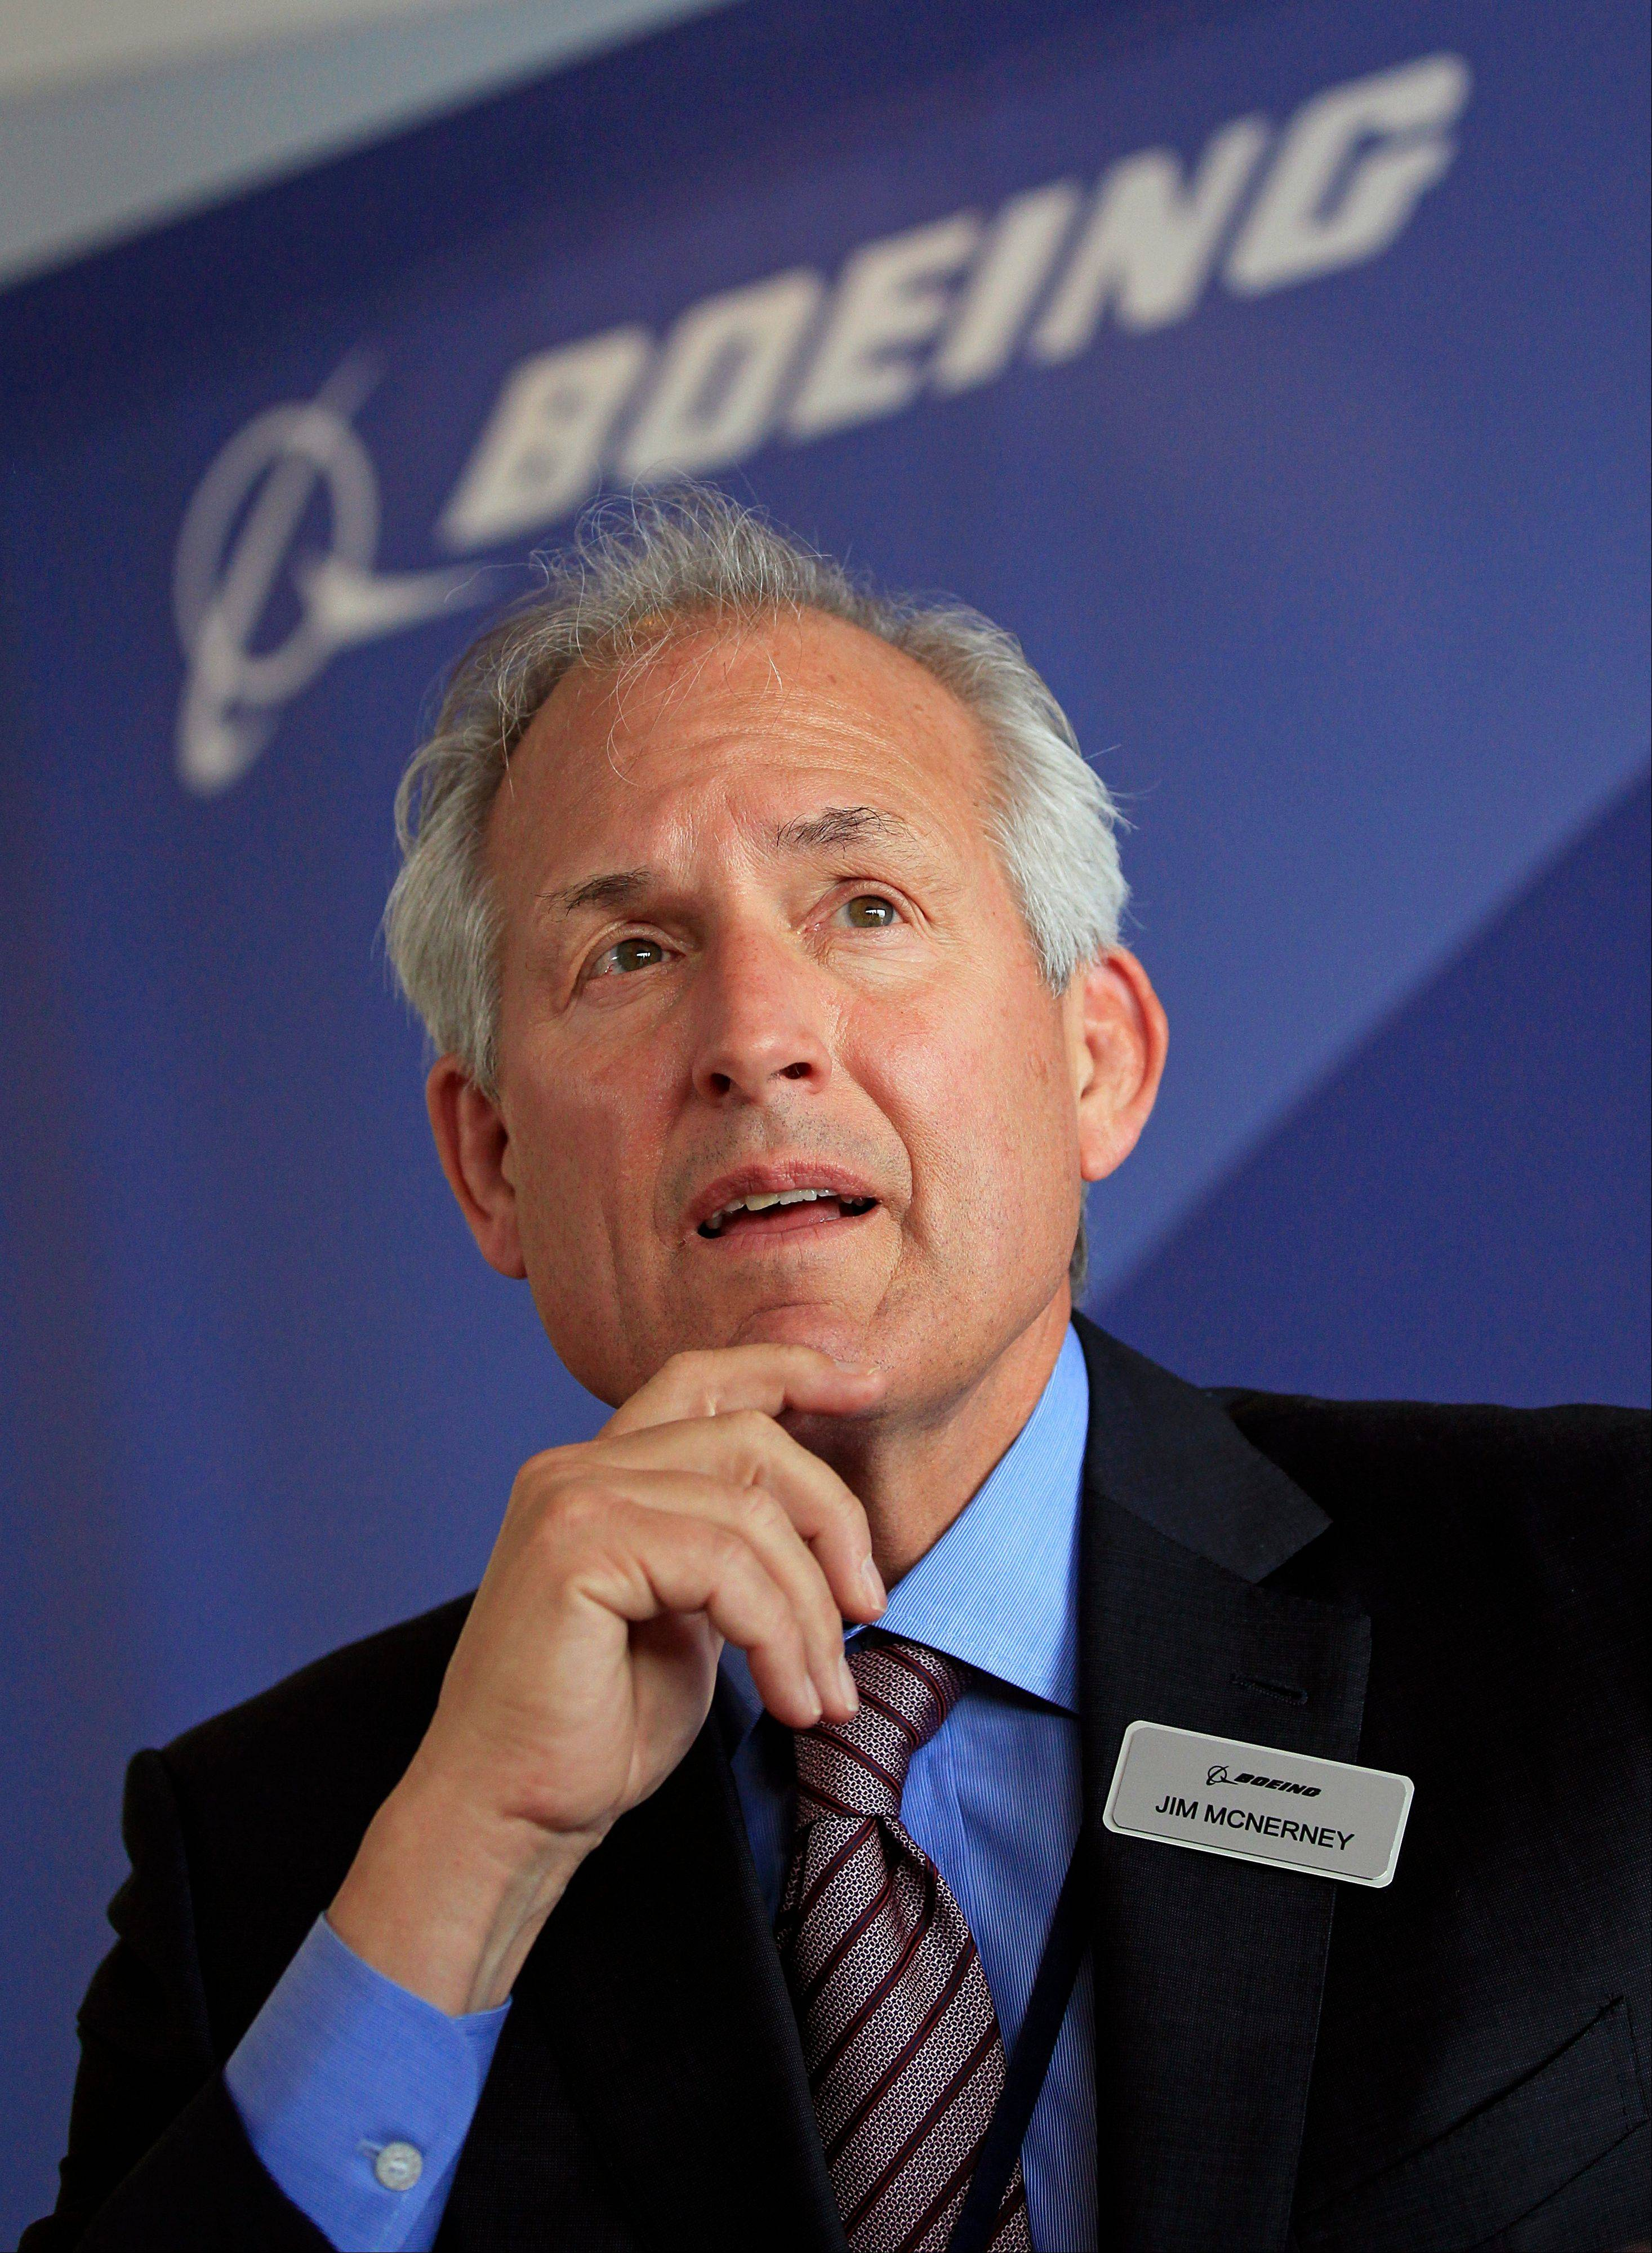 Boeing Company chairman and chief executive officer Jim McNerney speaks at a press conference at the Paris Air Show Tuesday. Boeing is starting work on a stretched-out version of its popular 787 Dreamliner jet, in the hope of reigniting interest in the aircraft after battery-related problems.